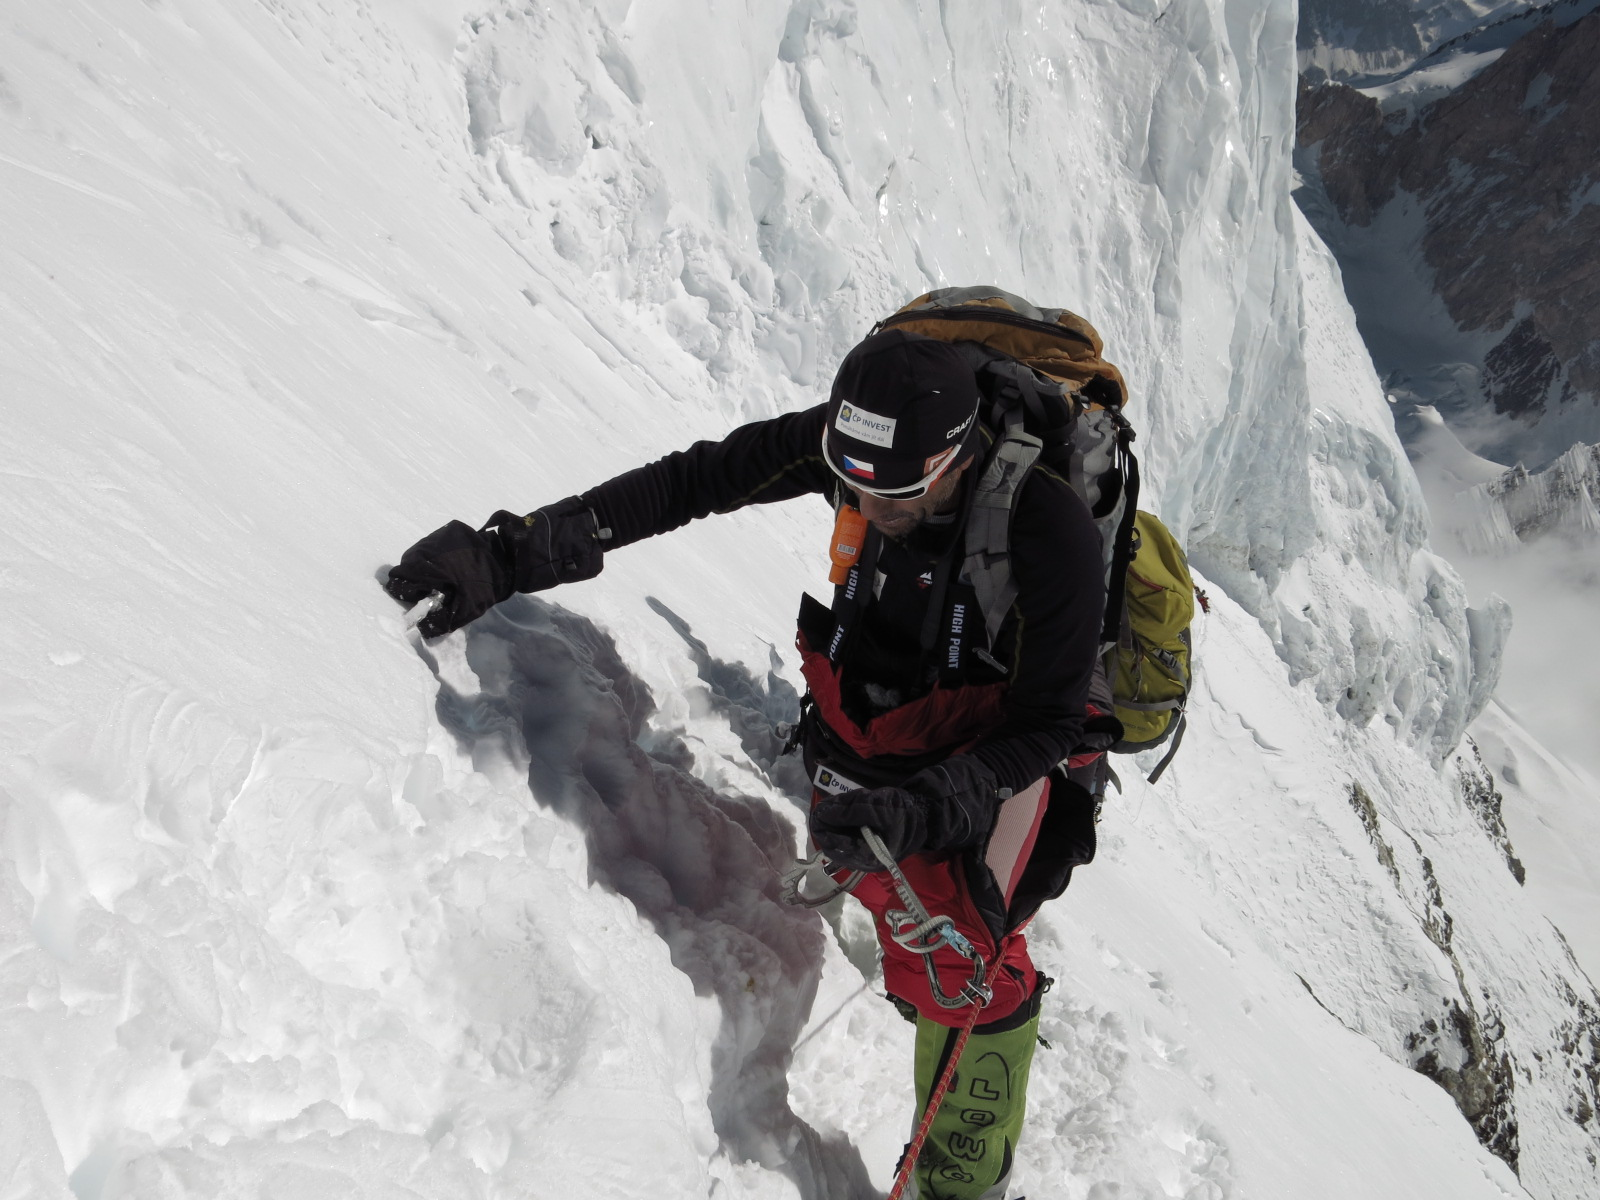 Radek Jaros nearing top of K2 where he earned his Crown of the Himalaya. Photo from Caters News Agency used by permission